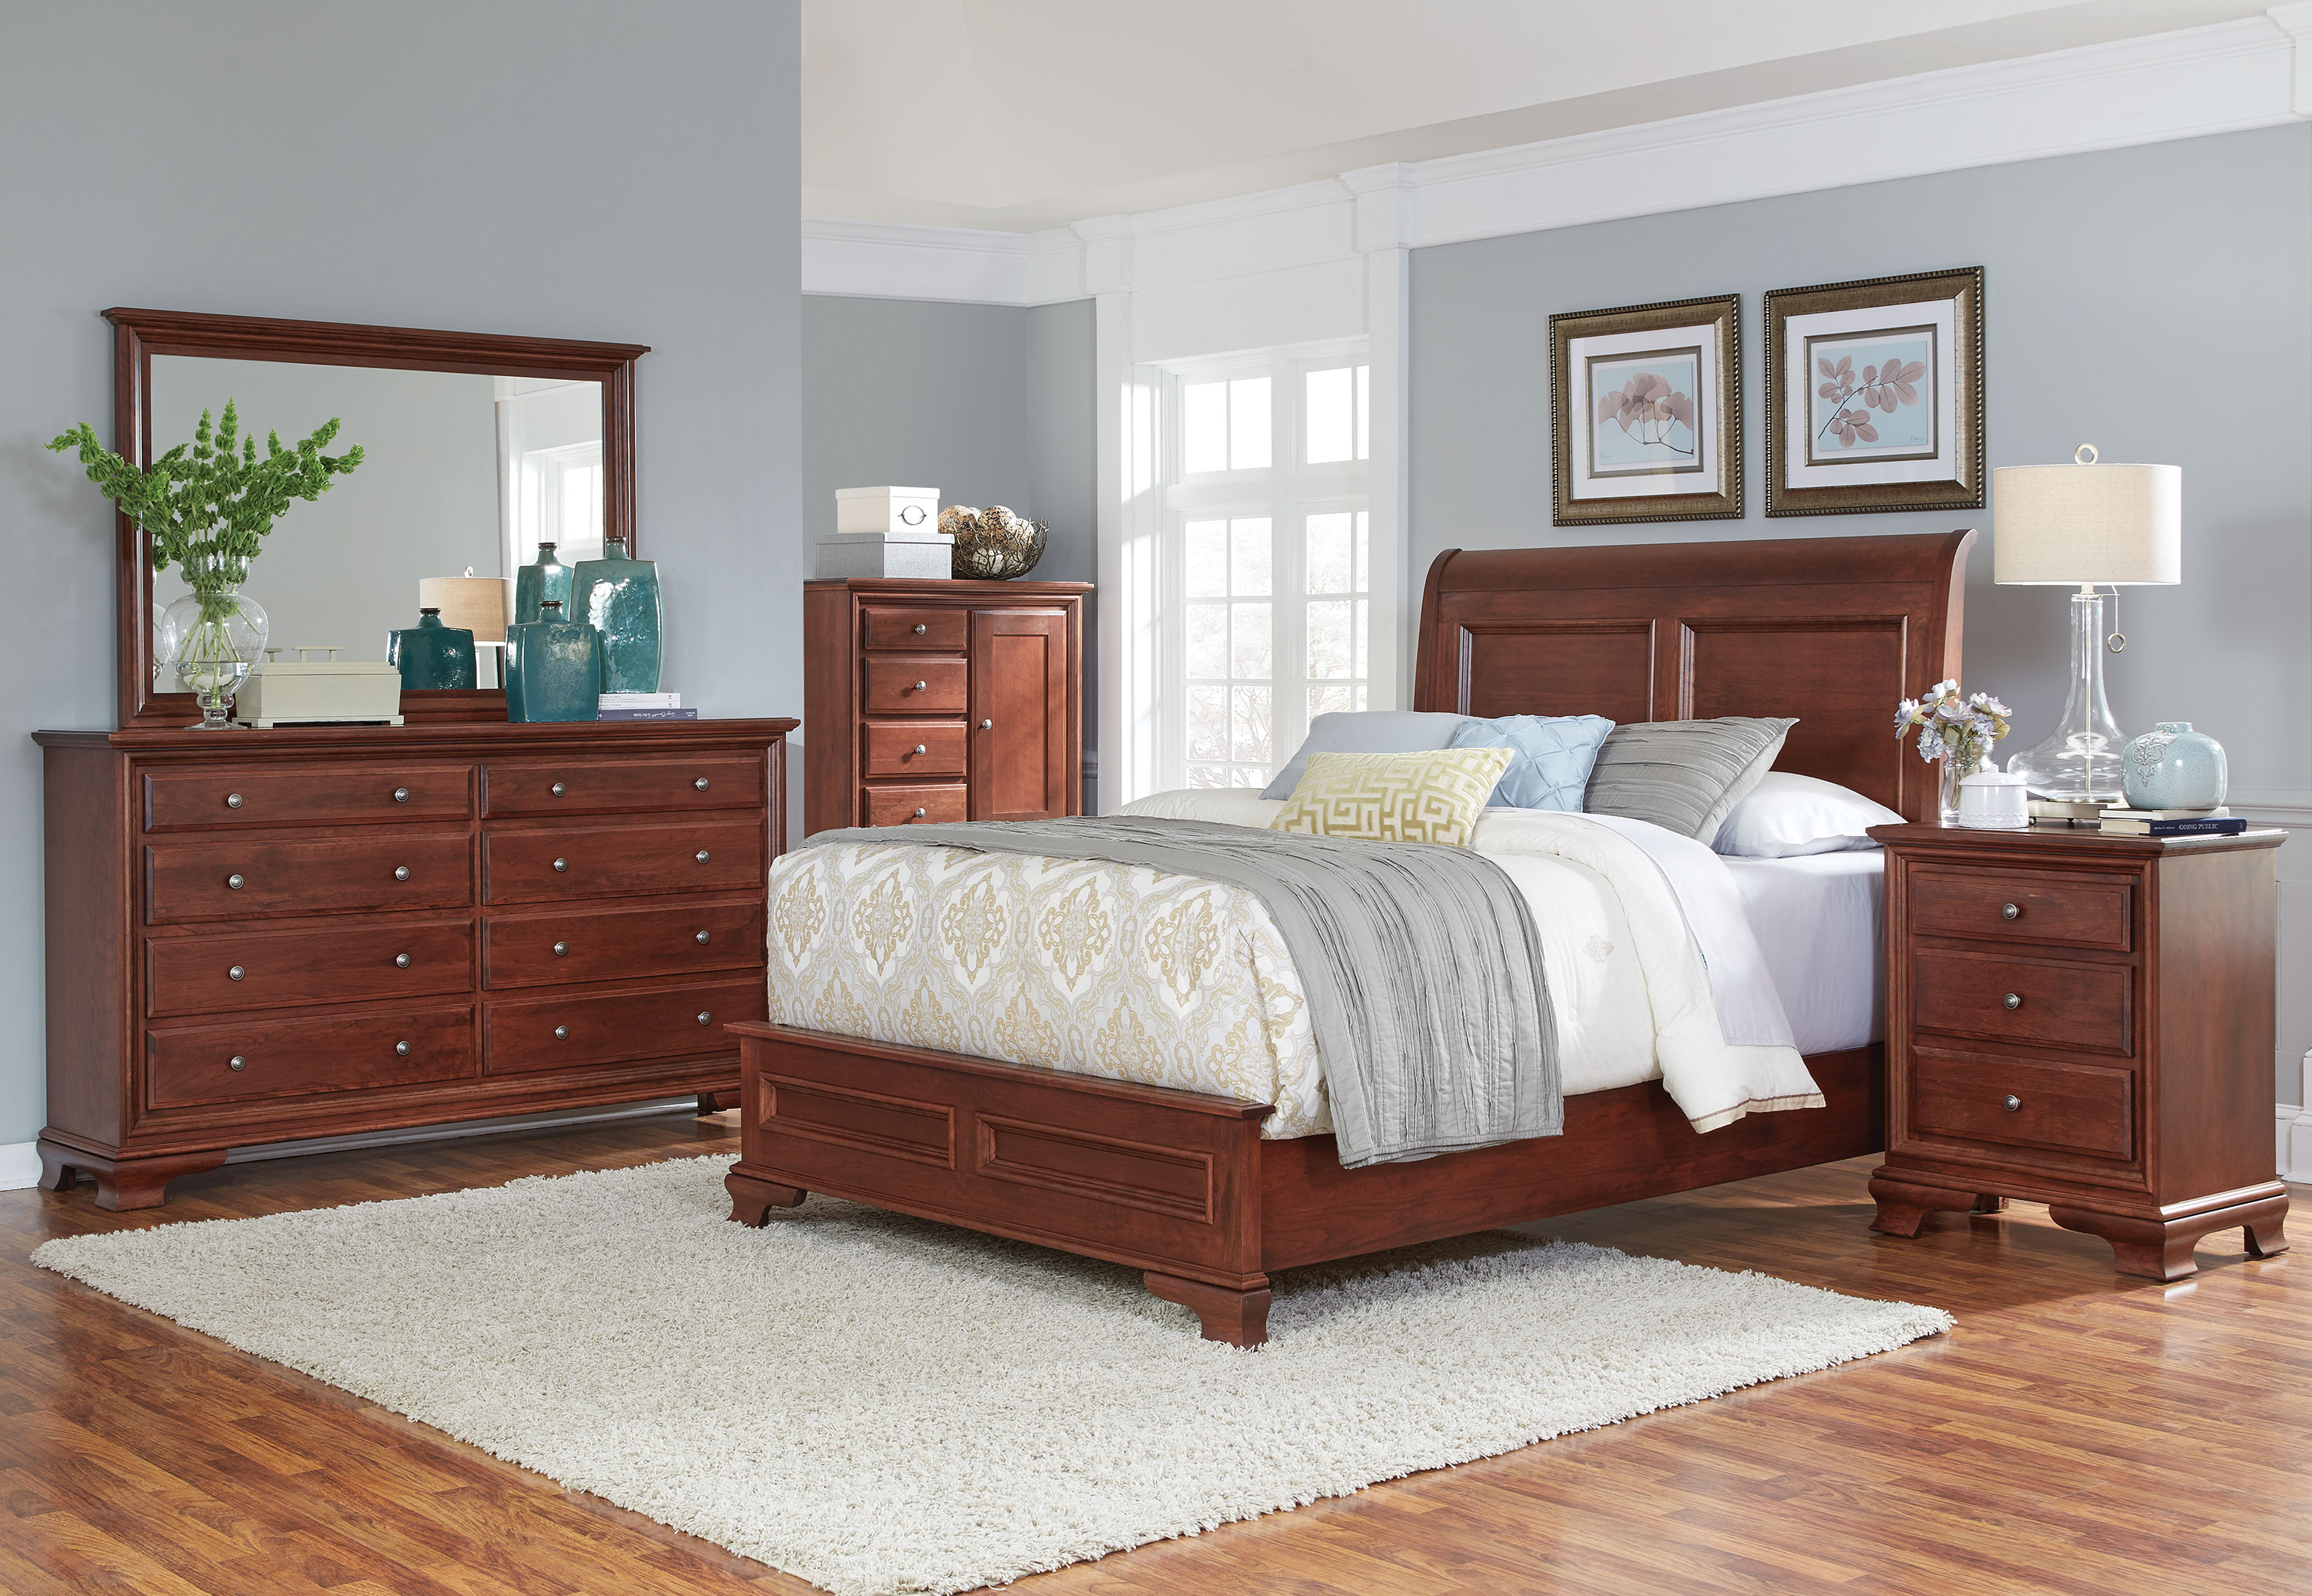 Amish Classic 4 Piece King Bedroom - Warm Brown